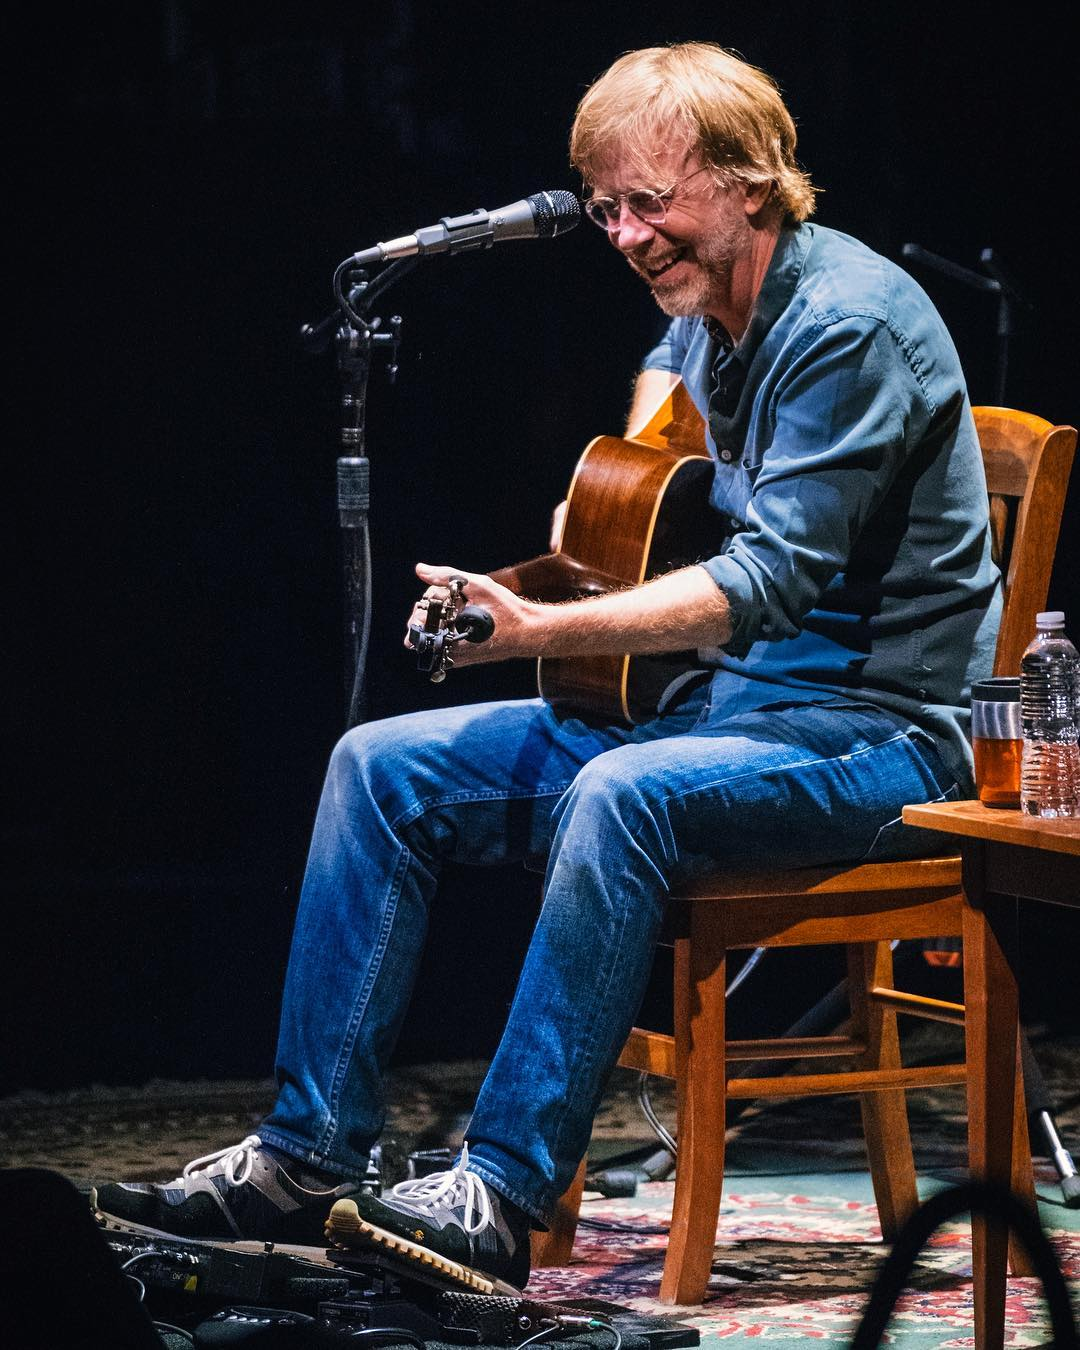 Were still buzzing from treyanastasio Friday nightare you? trey phishhellip